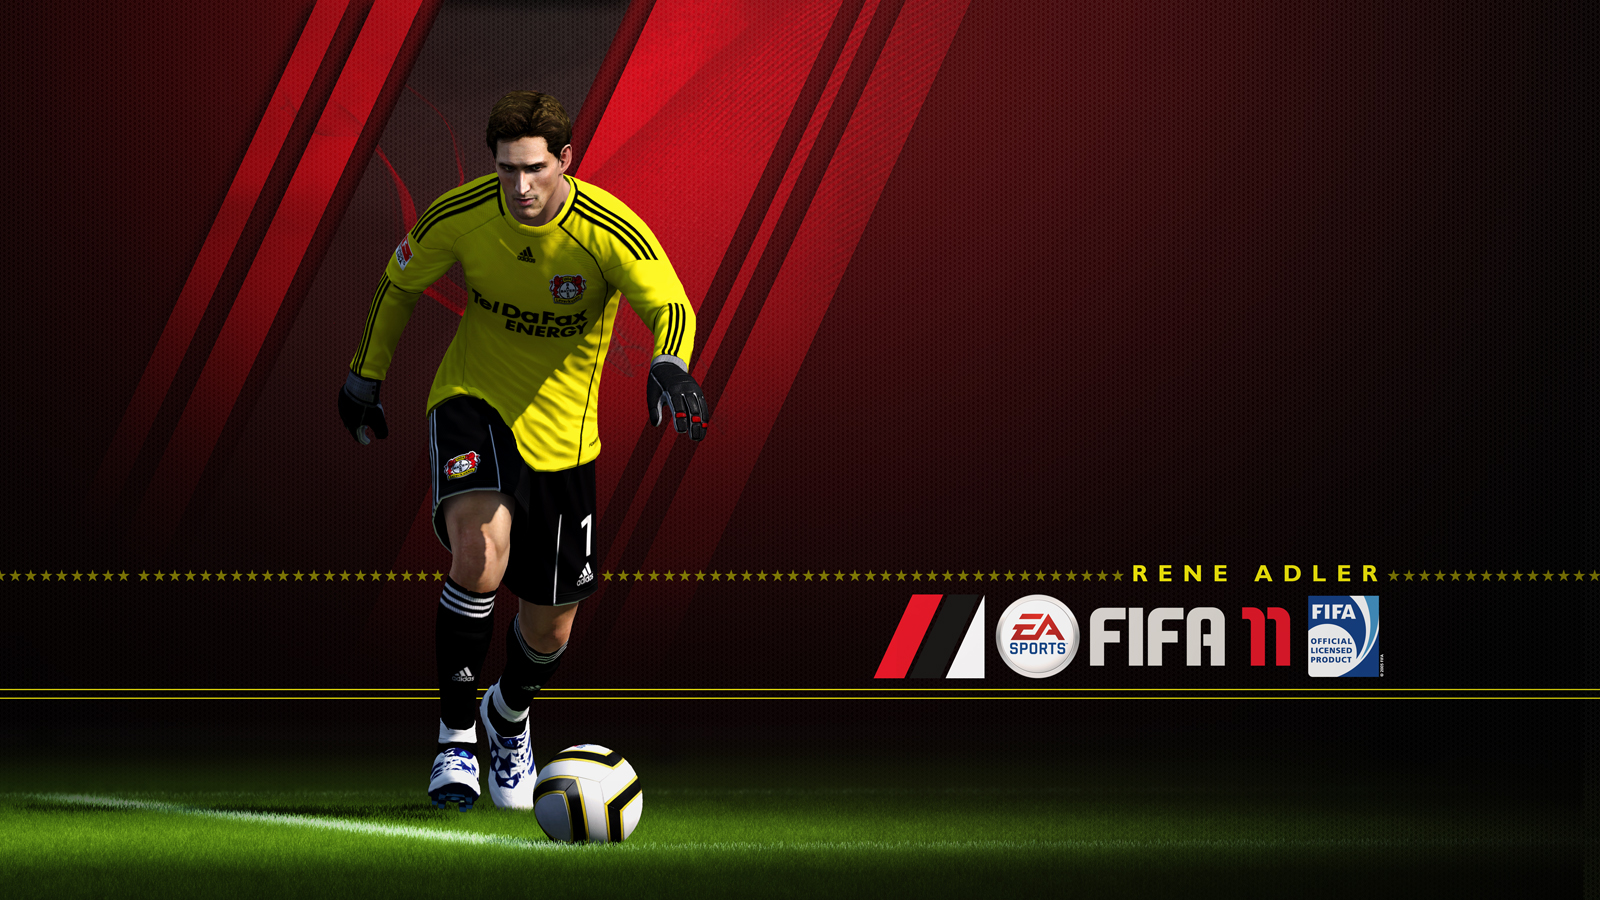 FIFA Football Wallpaper 11 (click to view)